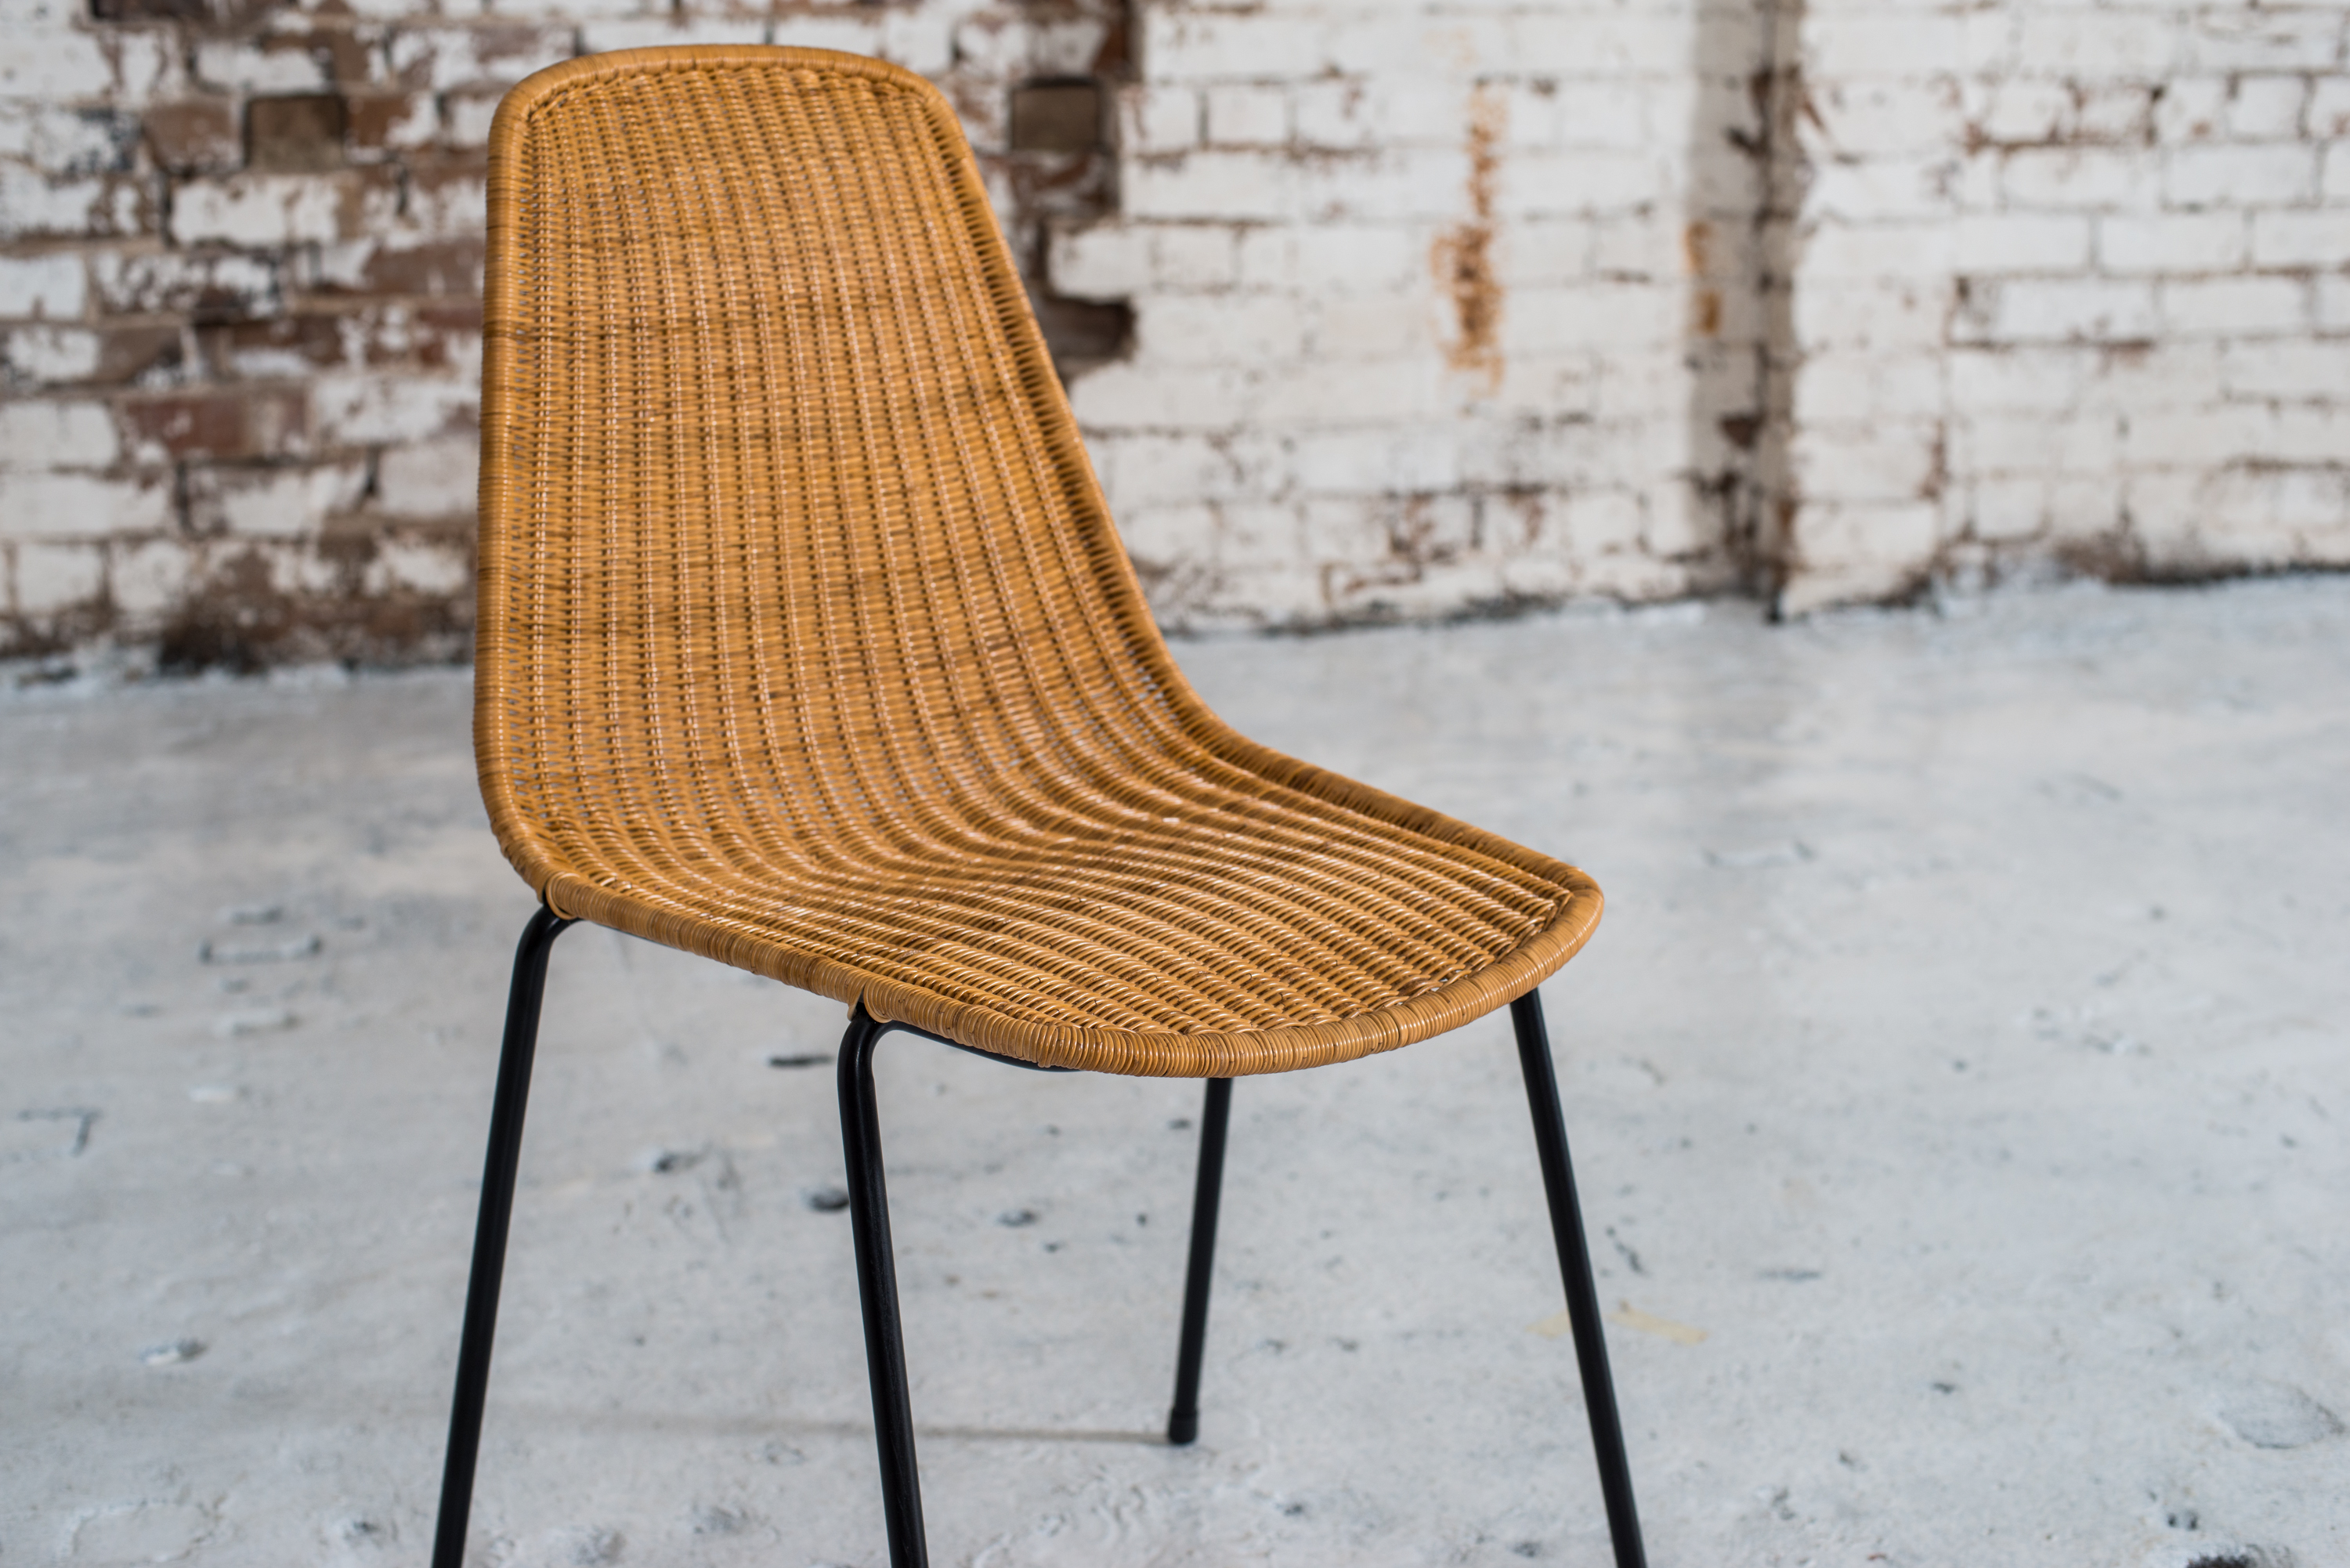 chair sunshade mid img company of basket wicker product sold rattan modern century by pair troy chairs